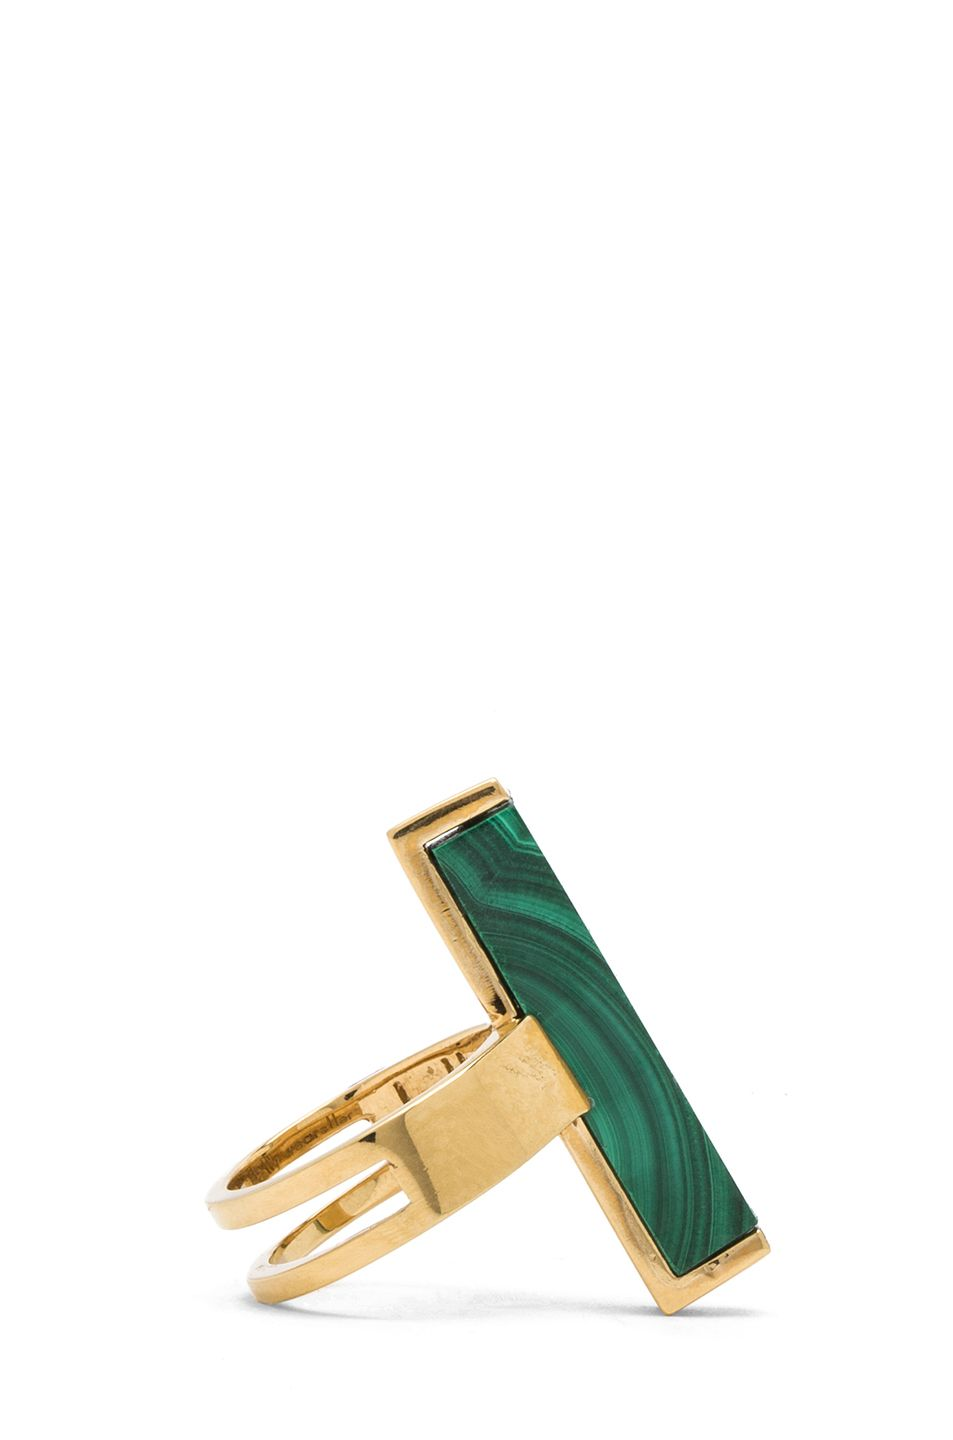 KELLY WEARSTLER  Stone Rod Ring in Gold and Malachite